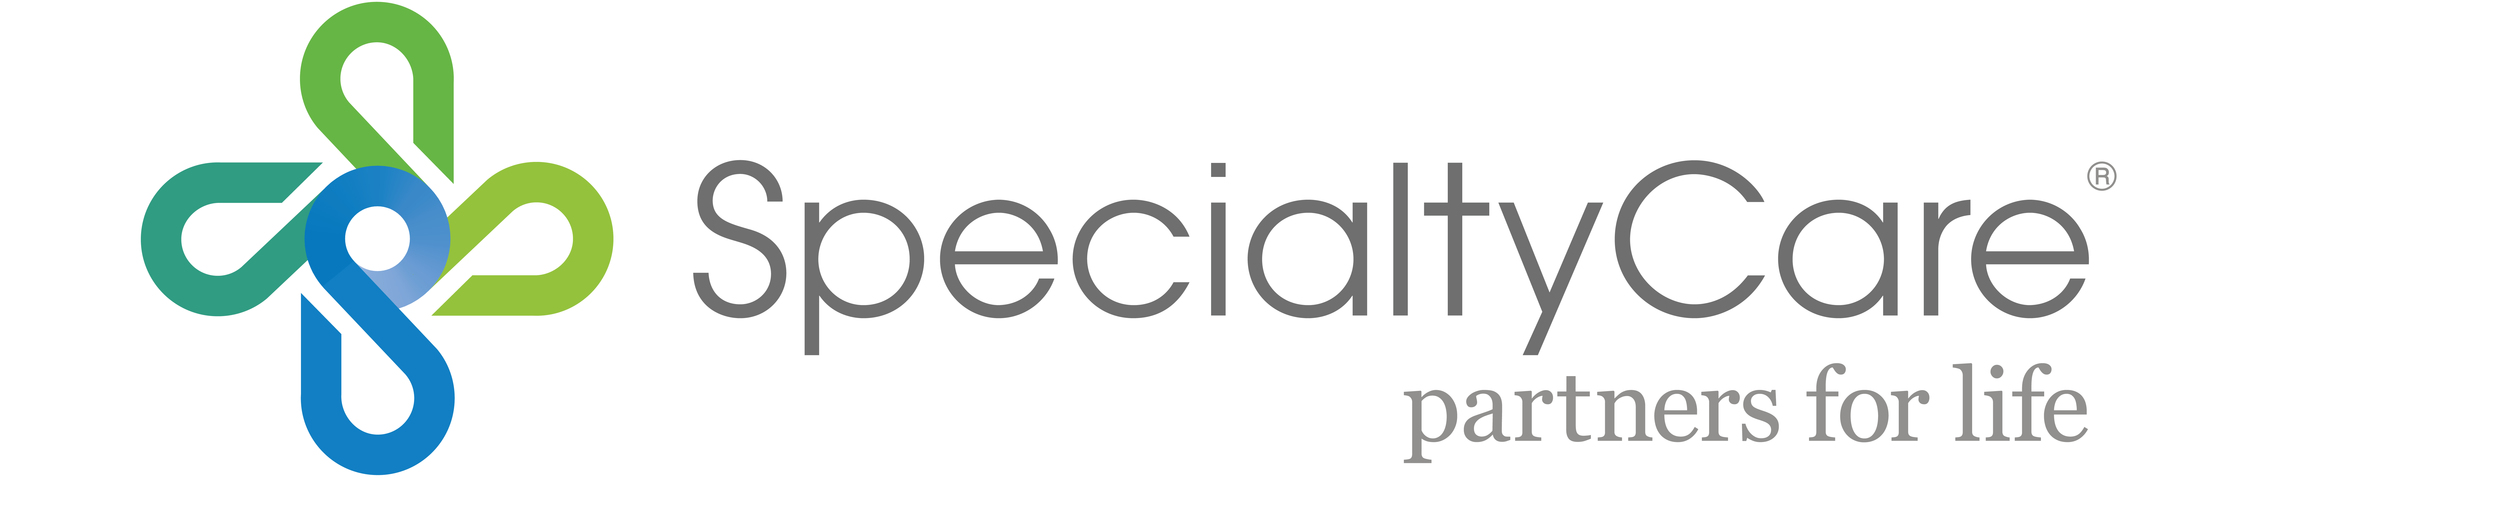 SpecialtyCare_Banner1-1.jpg